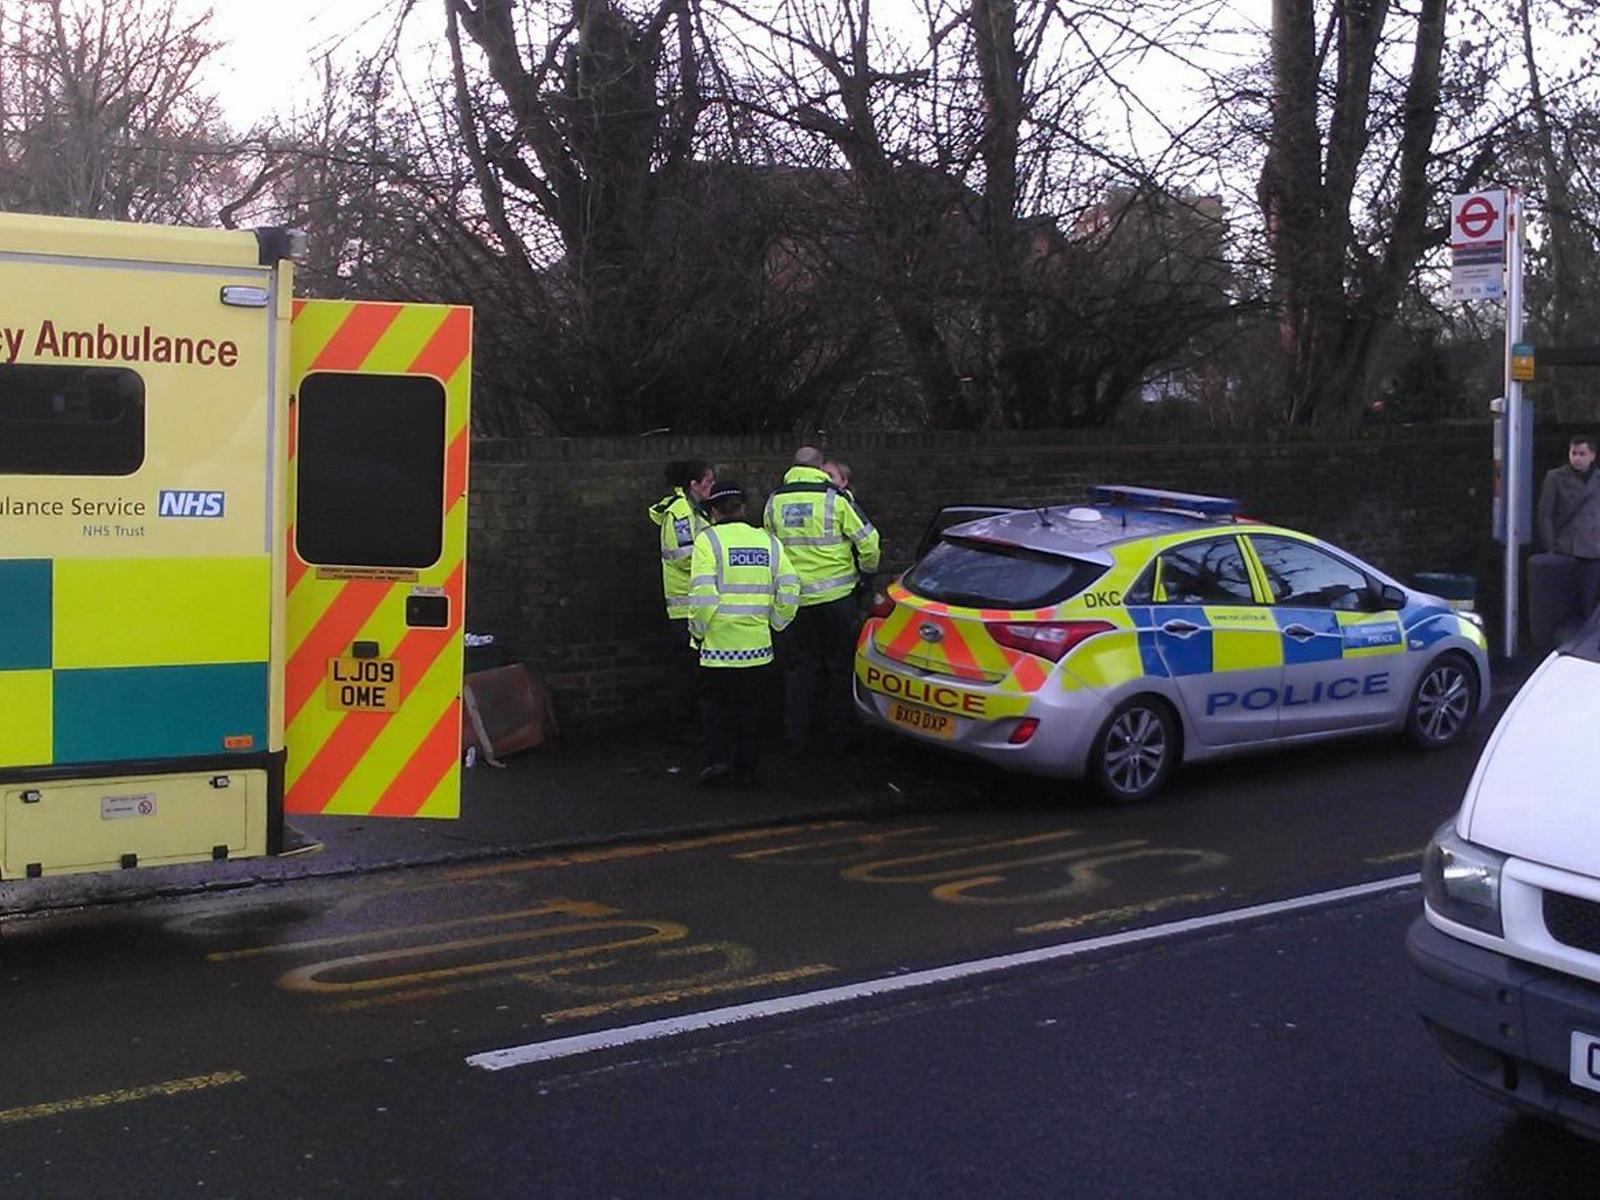 Police and ambulance near Chequers pub in Bickley